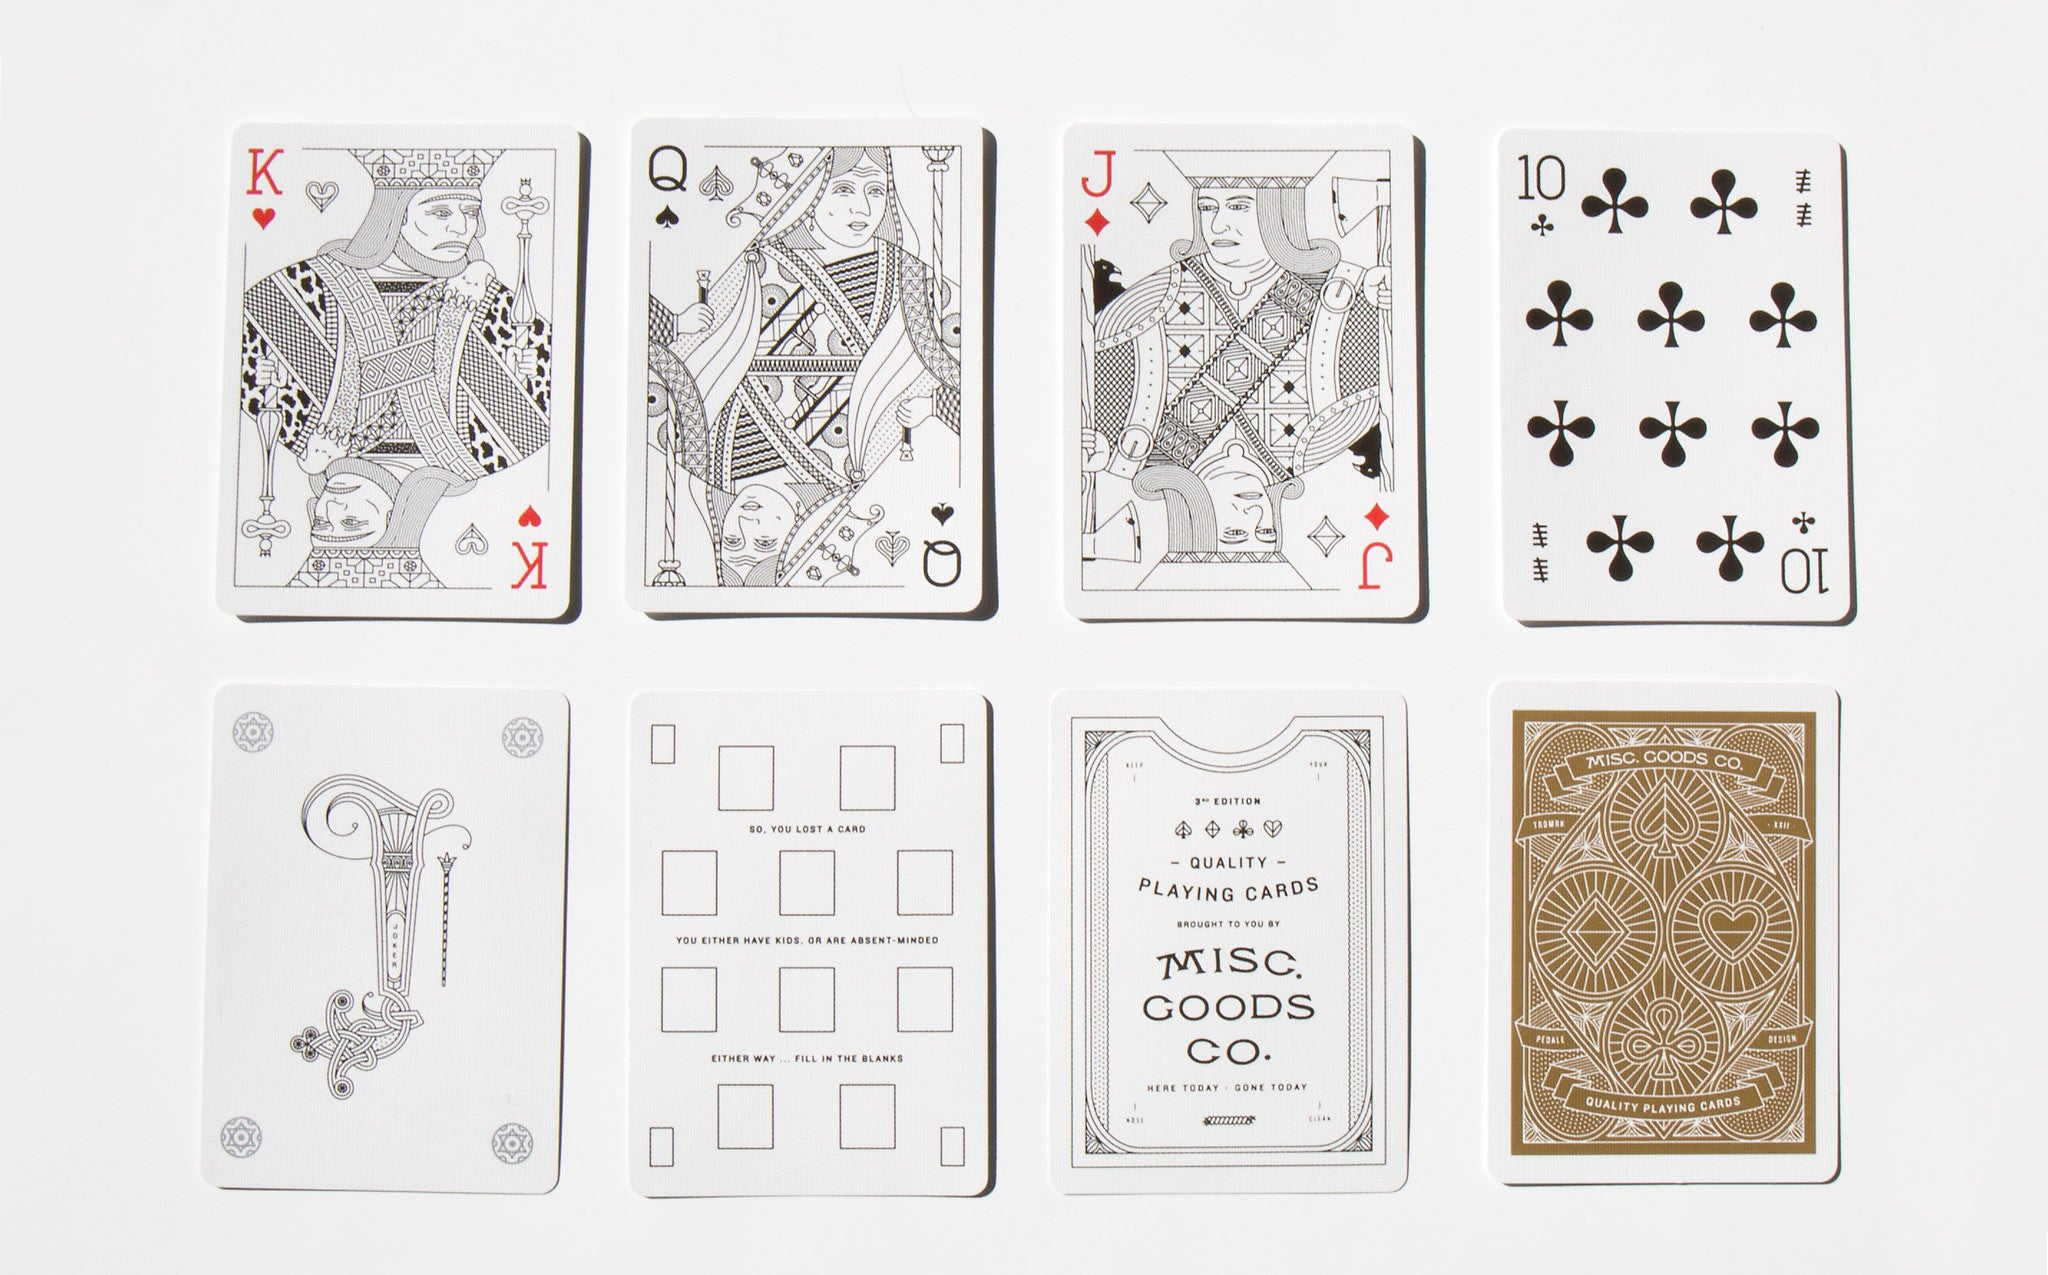 Misc Goods Co Playing Cards - Red - Front 2